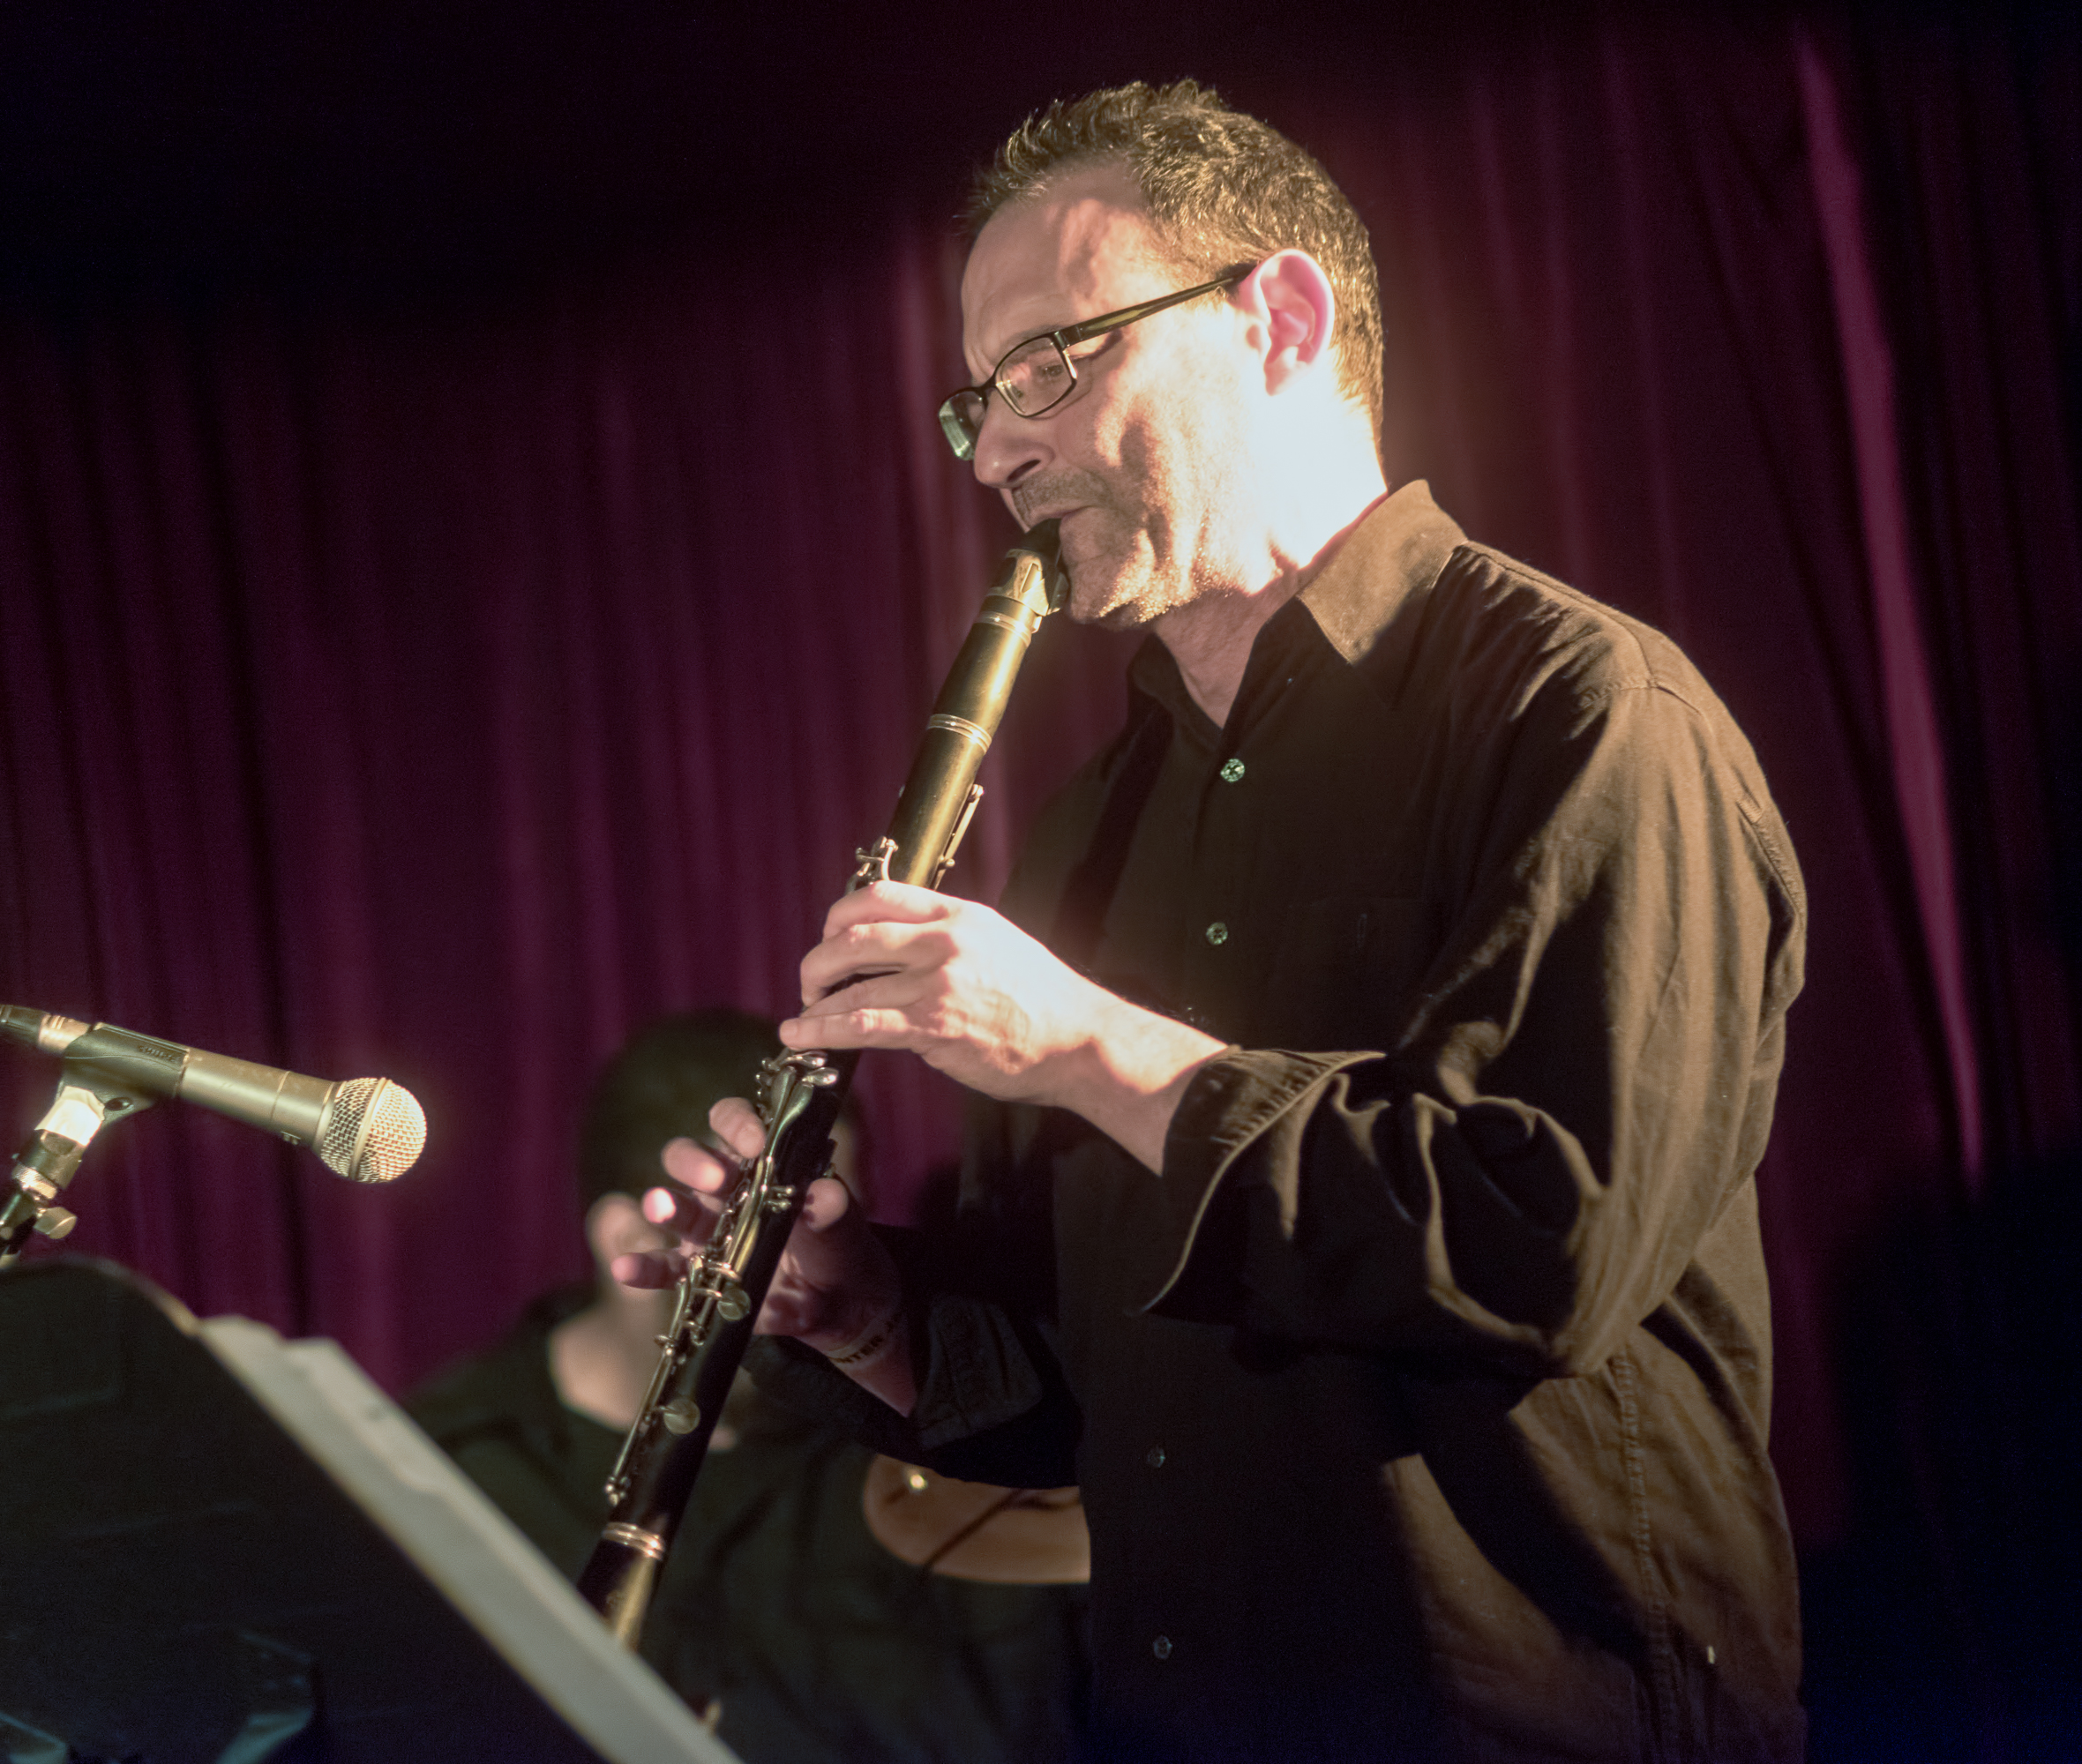 Ben Goldberg with Myra Melford's Snowy Egret at the Nyc Winter Jazzfest 2015